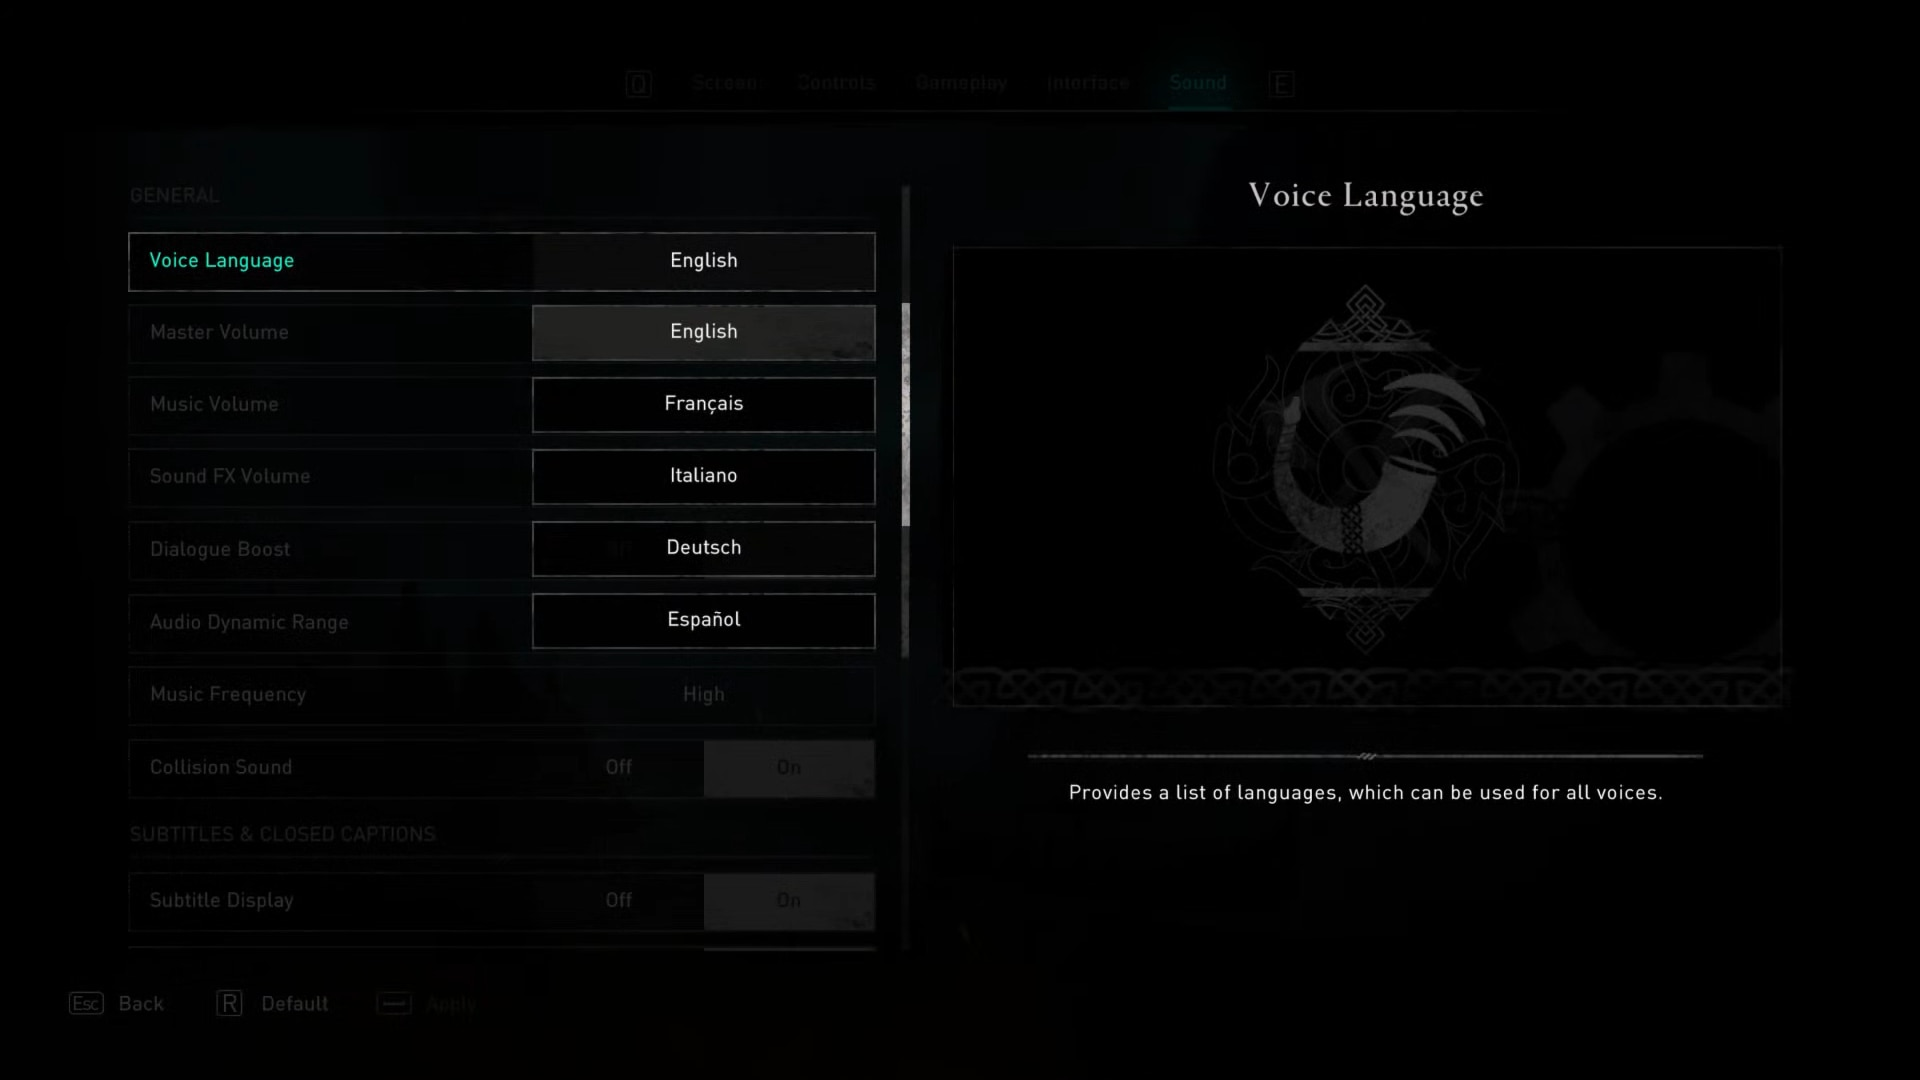 Language options for voice languages in sound options of Assassin's Creed Valhalla